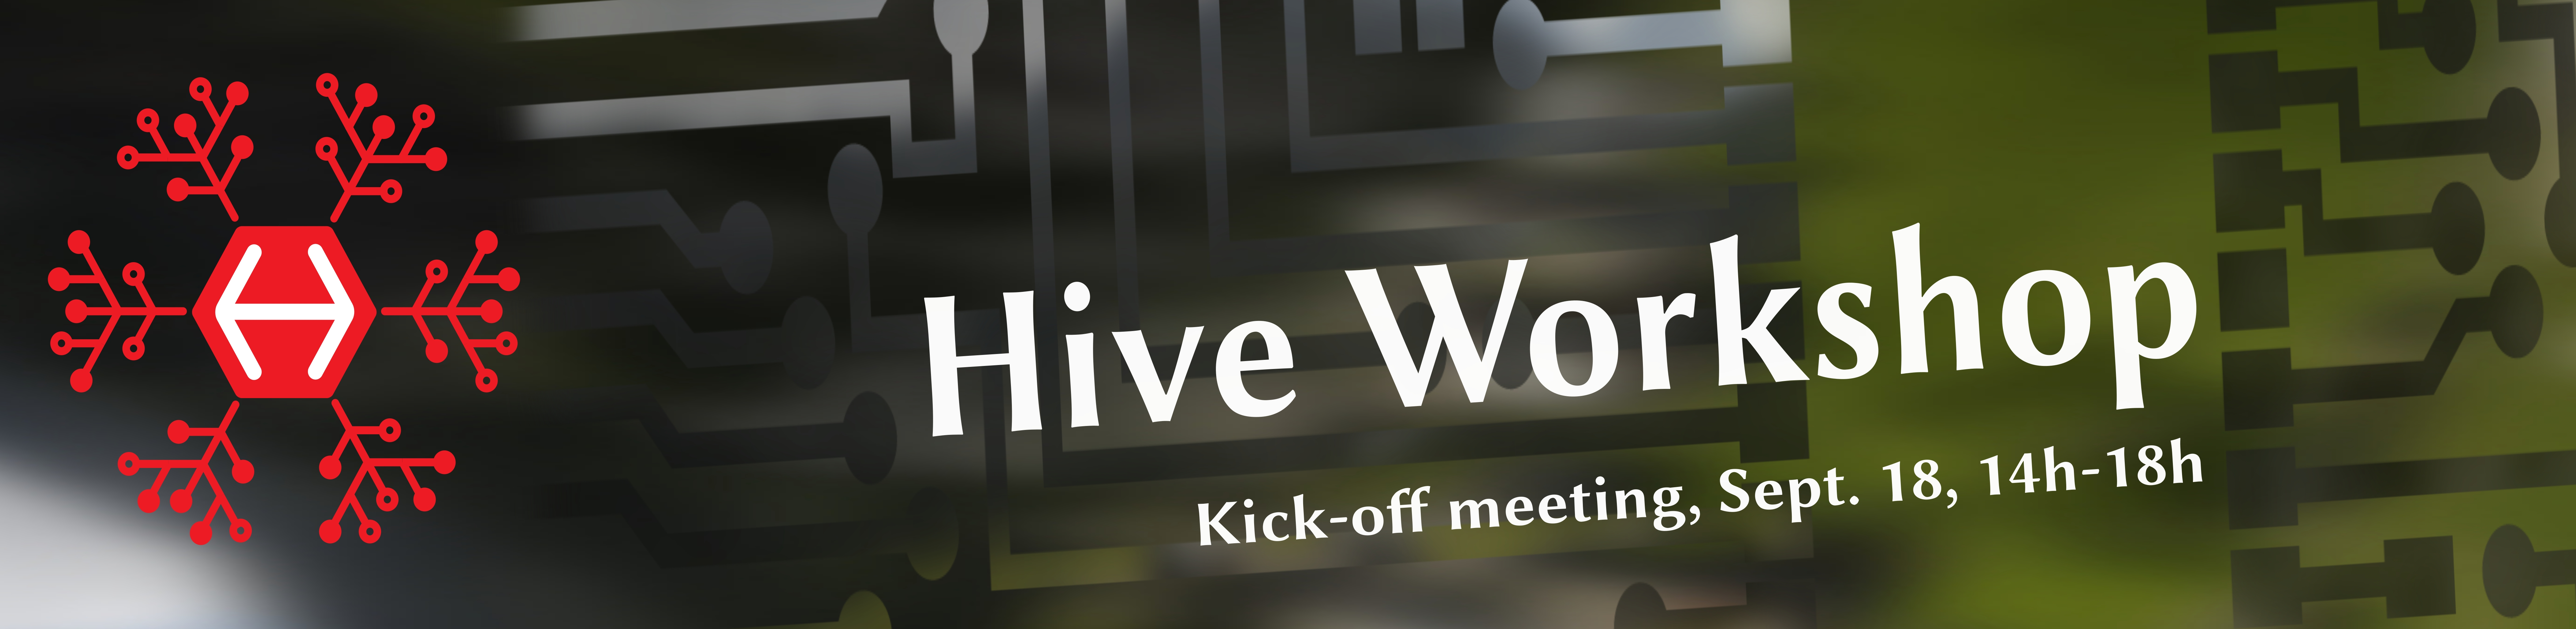 Welcome to the Hive-workshop 18. Sept., Åpen sone/IFI.